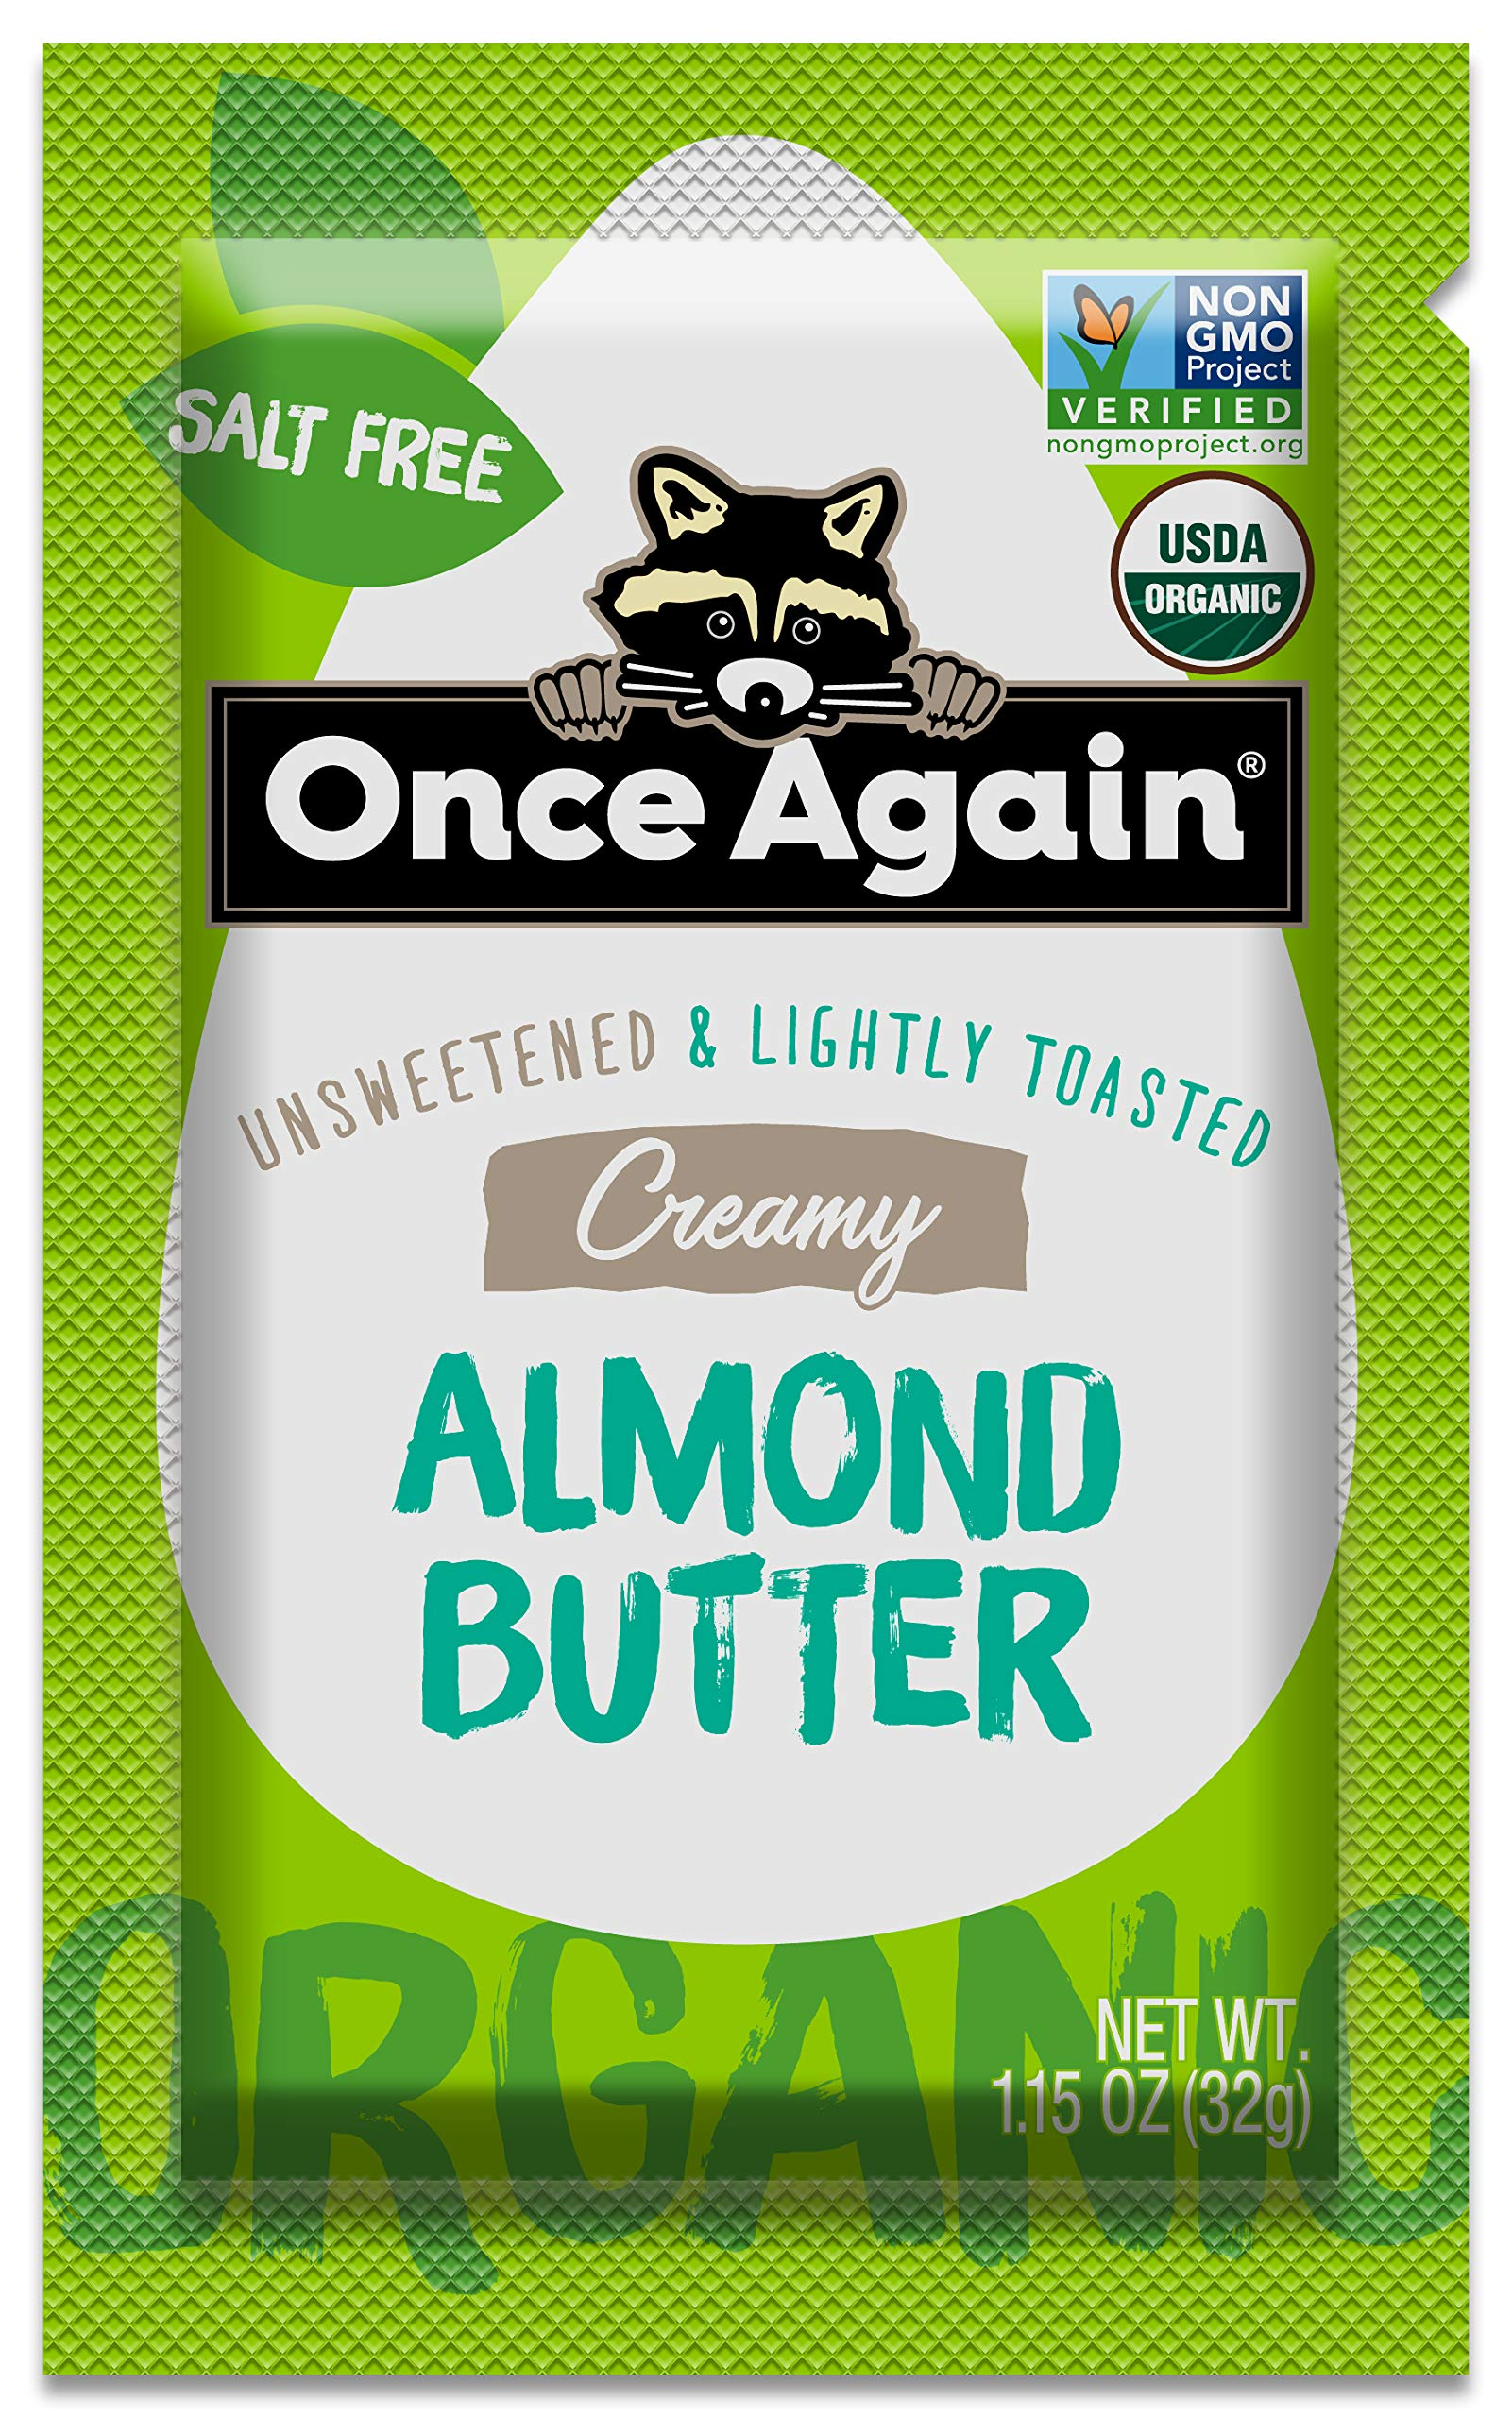 Once Again Organic Almond Butter, Lightly Toasted, 10 Count